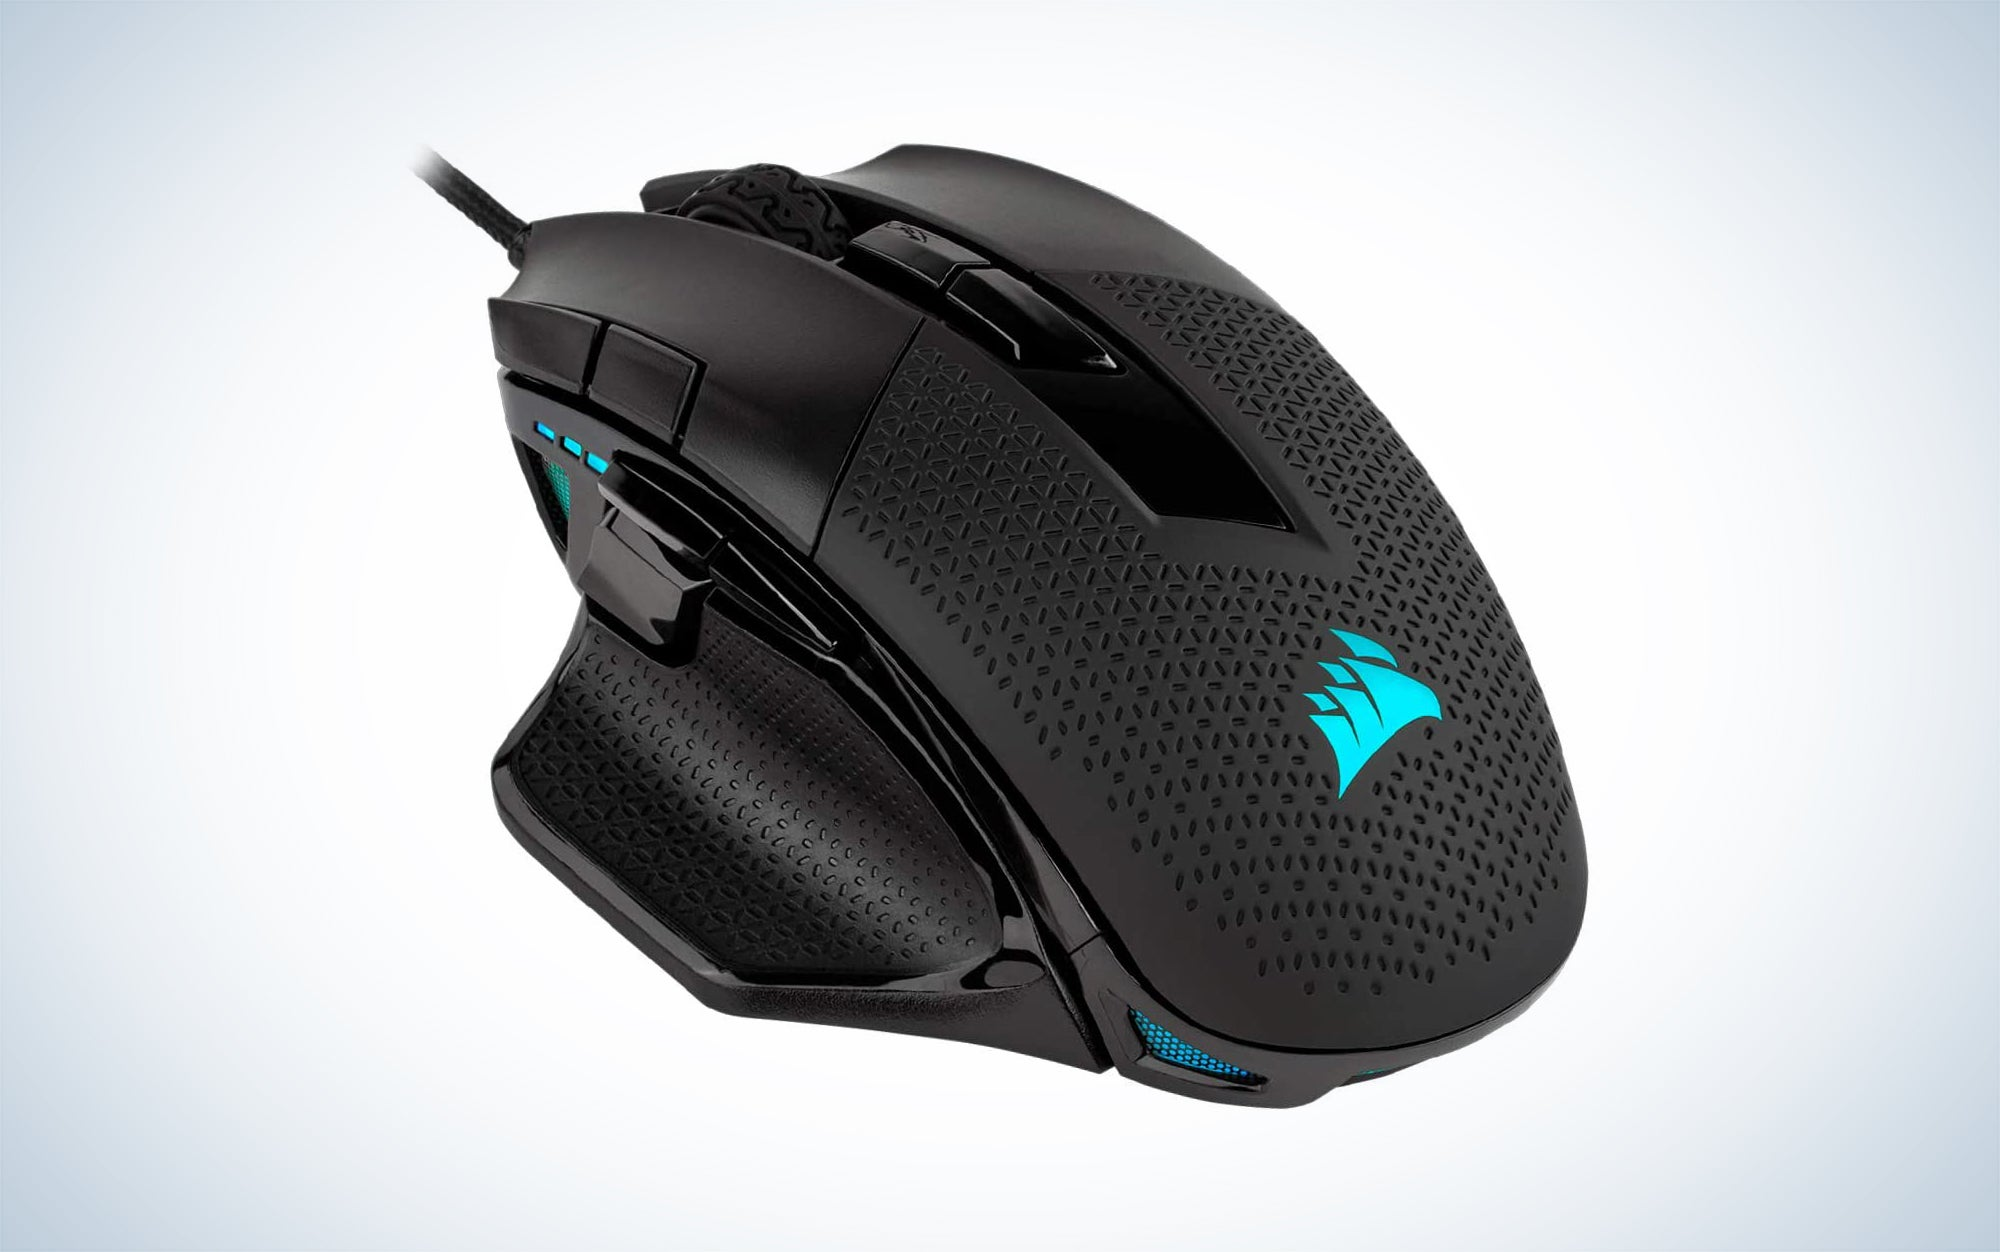 Corsair Nightsword RGB - Comfort Performance Tunable FPS/MOBA Optical Ergonomic Gaming Mouse with Backlit RGB LED, 18000 DPI is one of the best gaming accessories.